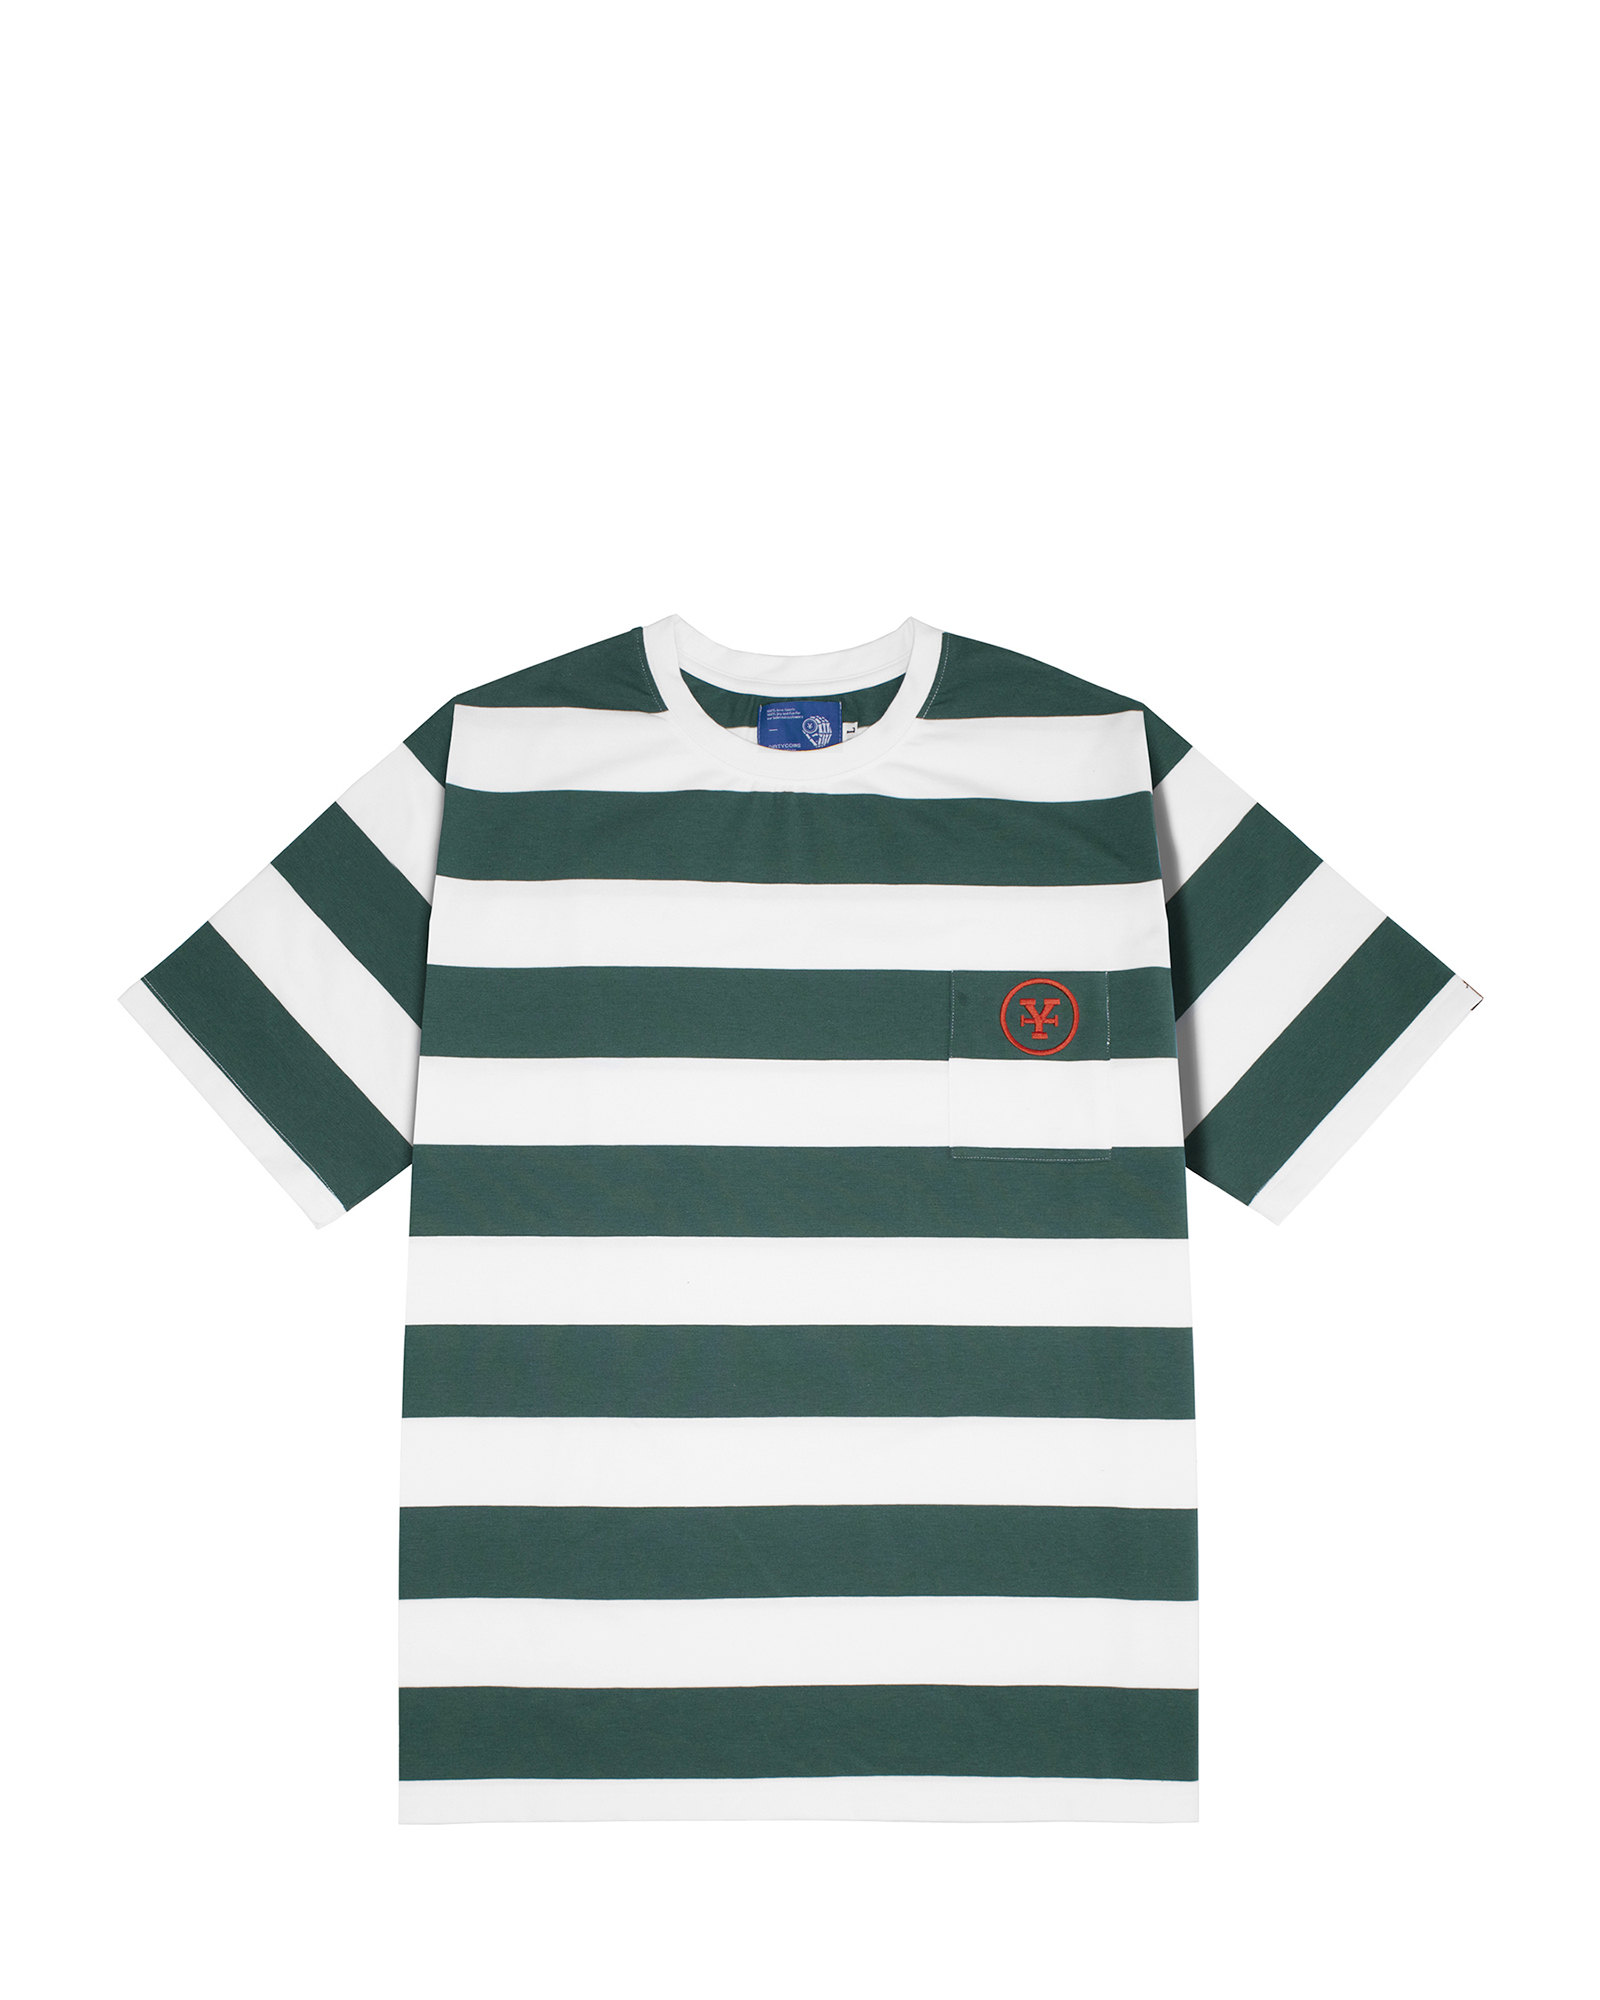 DirtyCoins Big Stripes T-shirt - Green